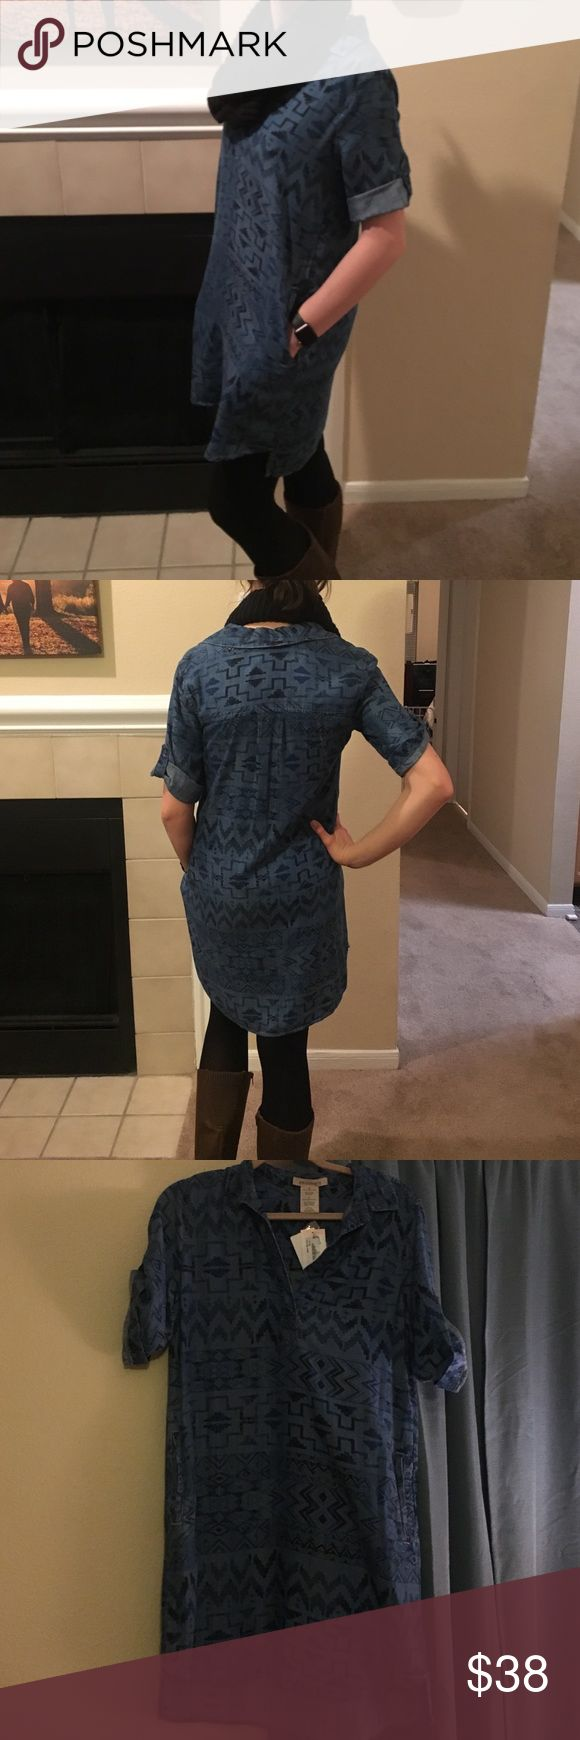 *New* Philosophy Denim Style Dress This is a fun dress with an aztec-style pattern that has a denim look but is super soft and feminine. The pockets make it so cute and stylish over leggings with boots ♥️ Philosophy Dresses